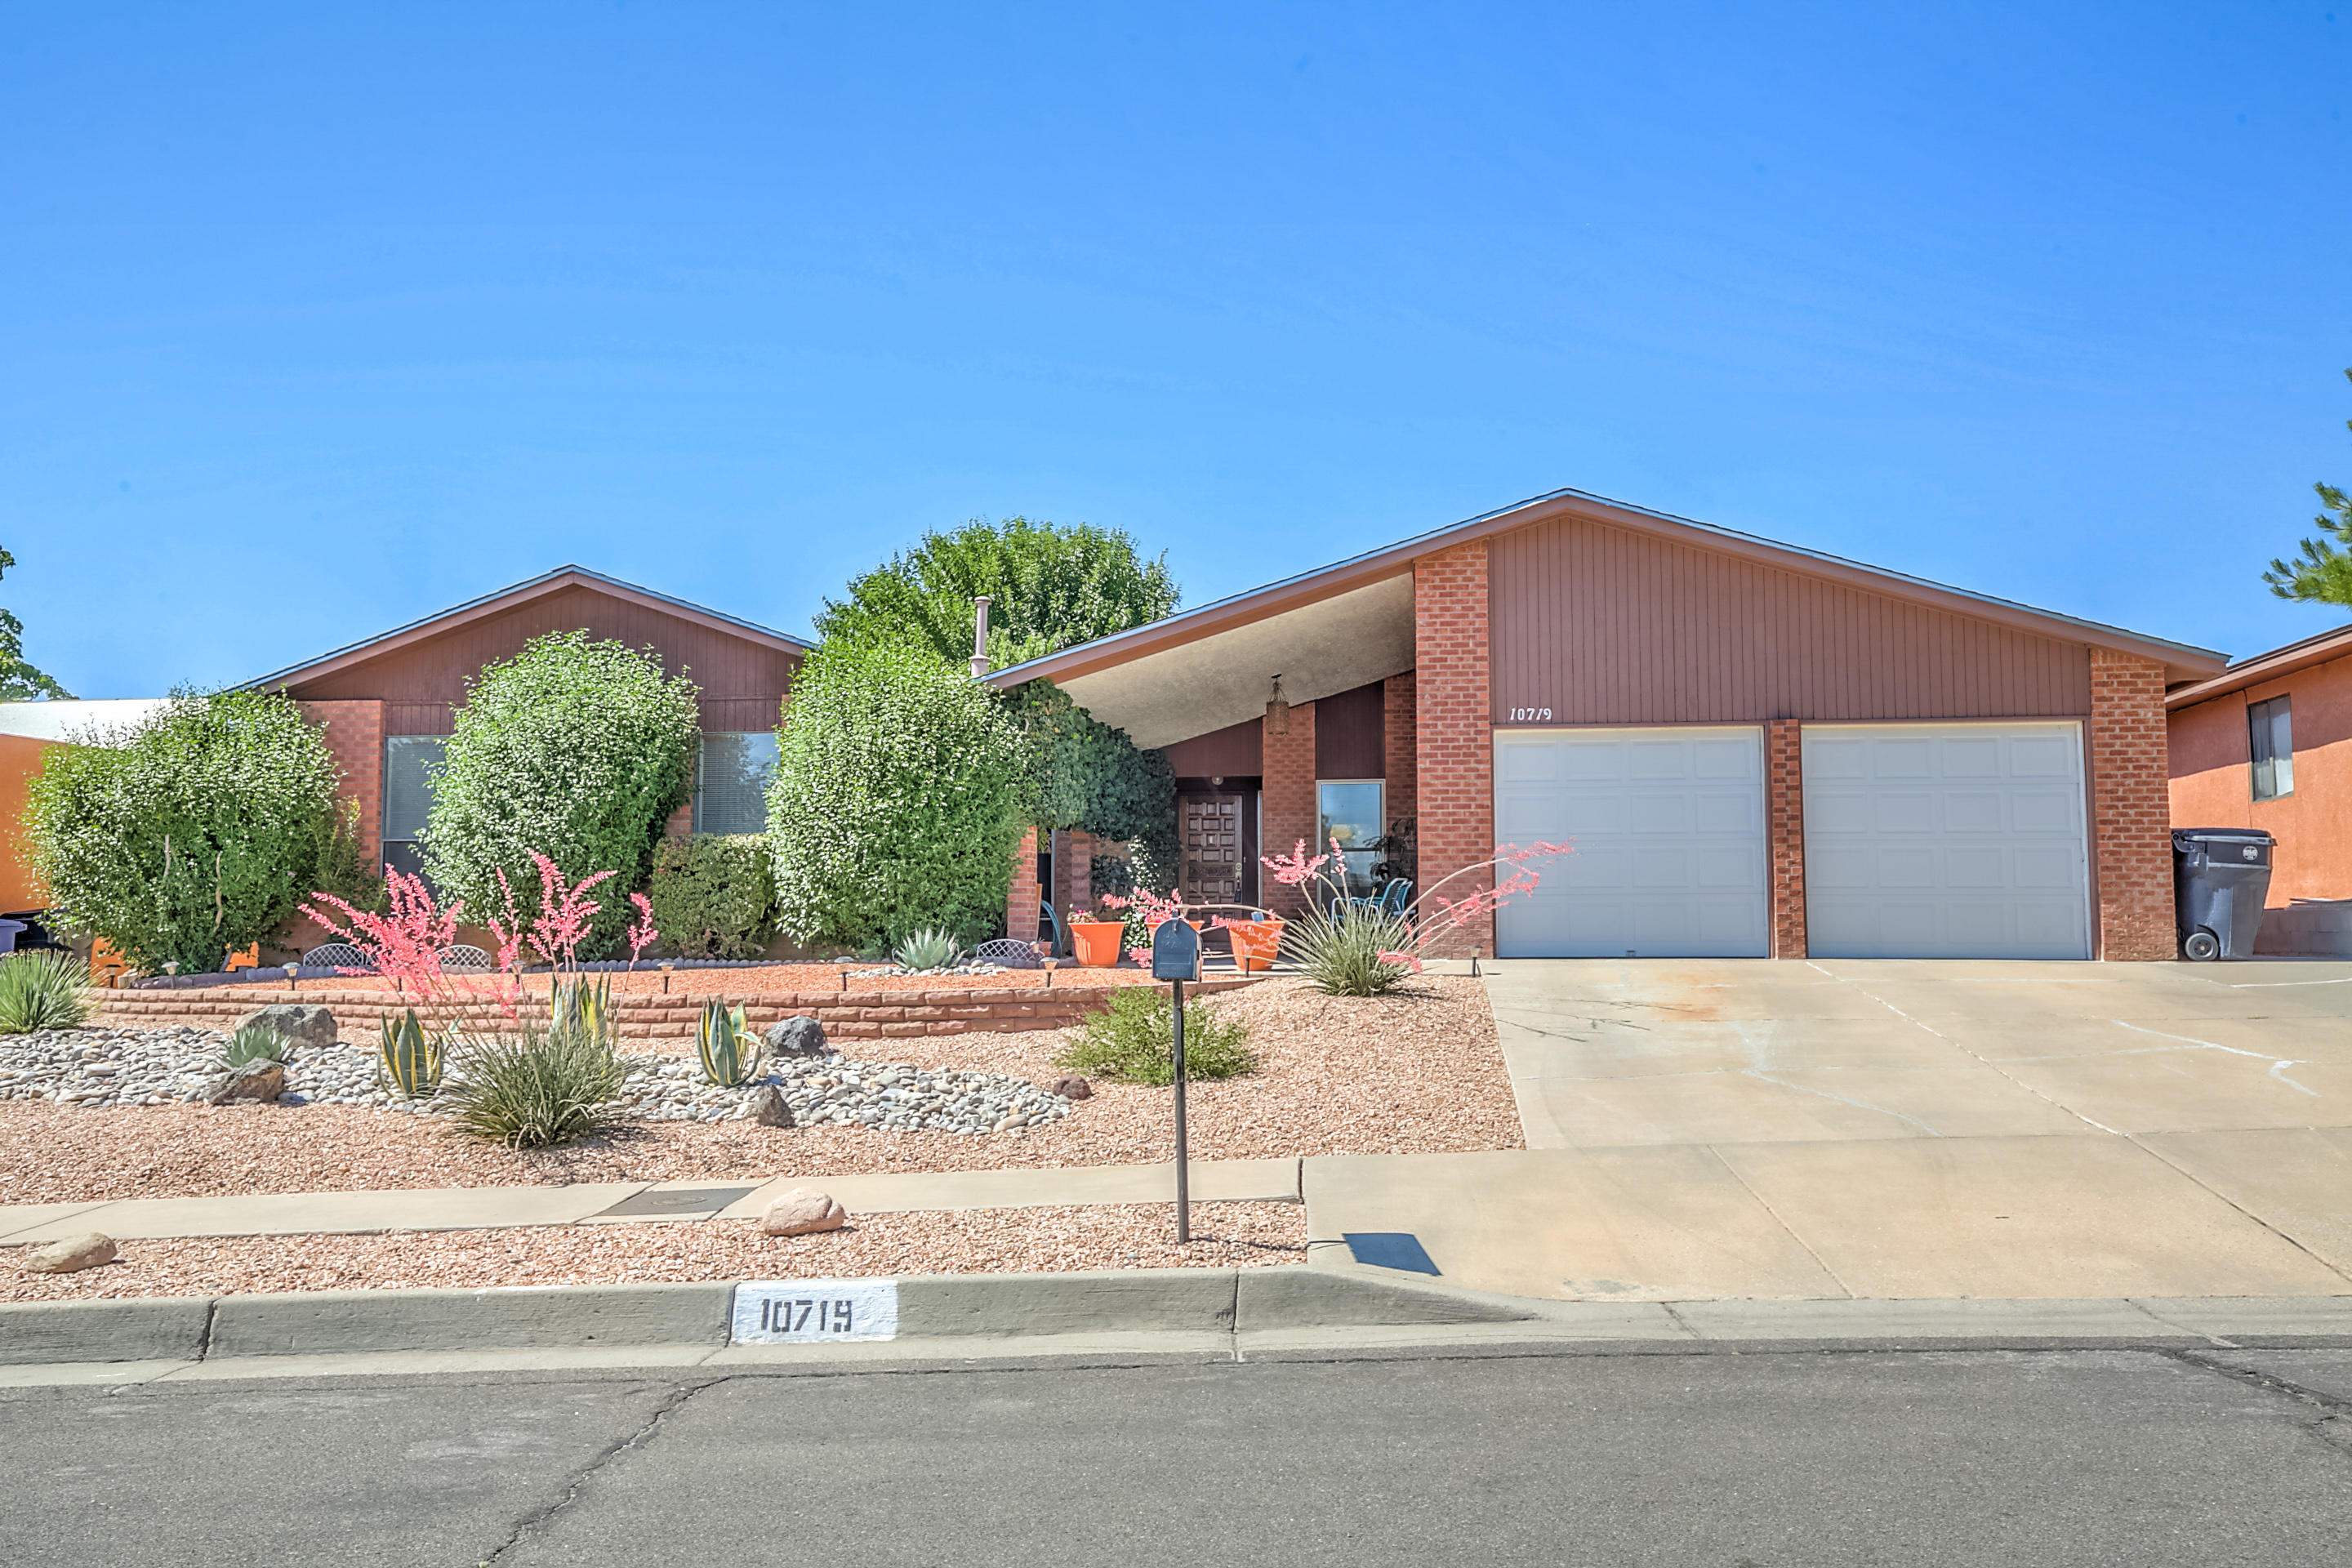 10719 KIELICH AVENUE NE, ALBUQUERQUE, NM 87111